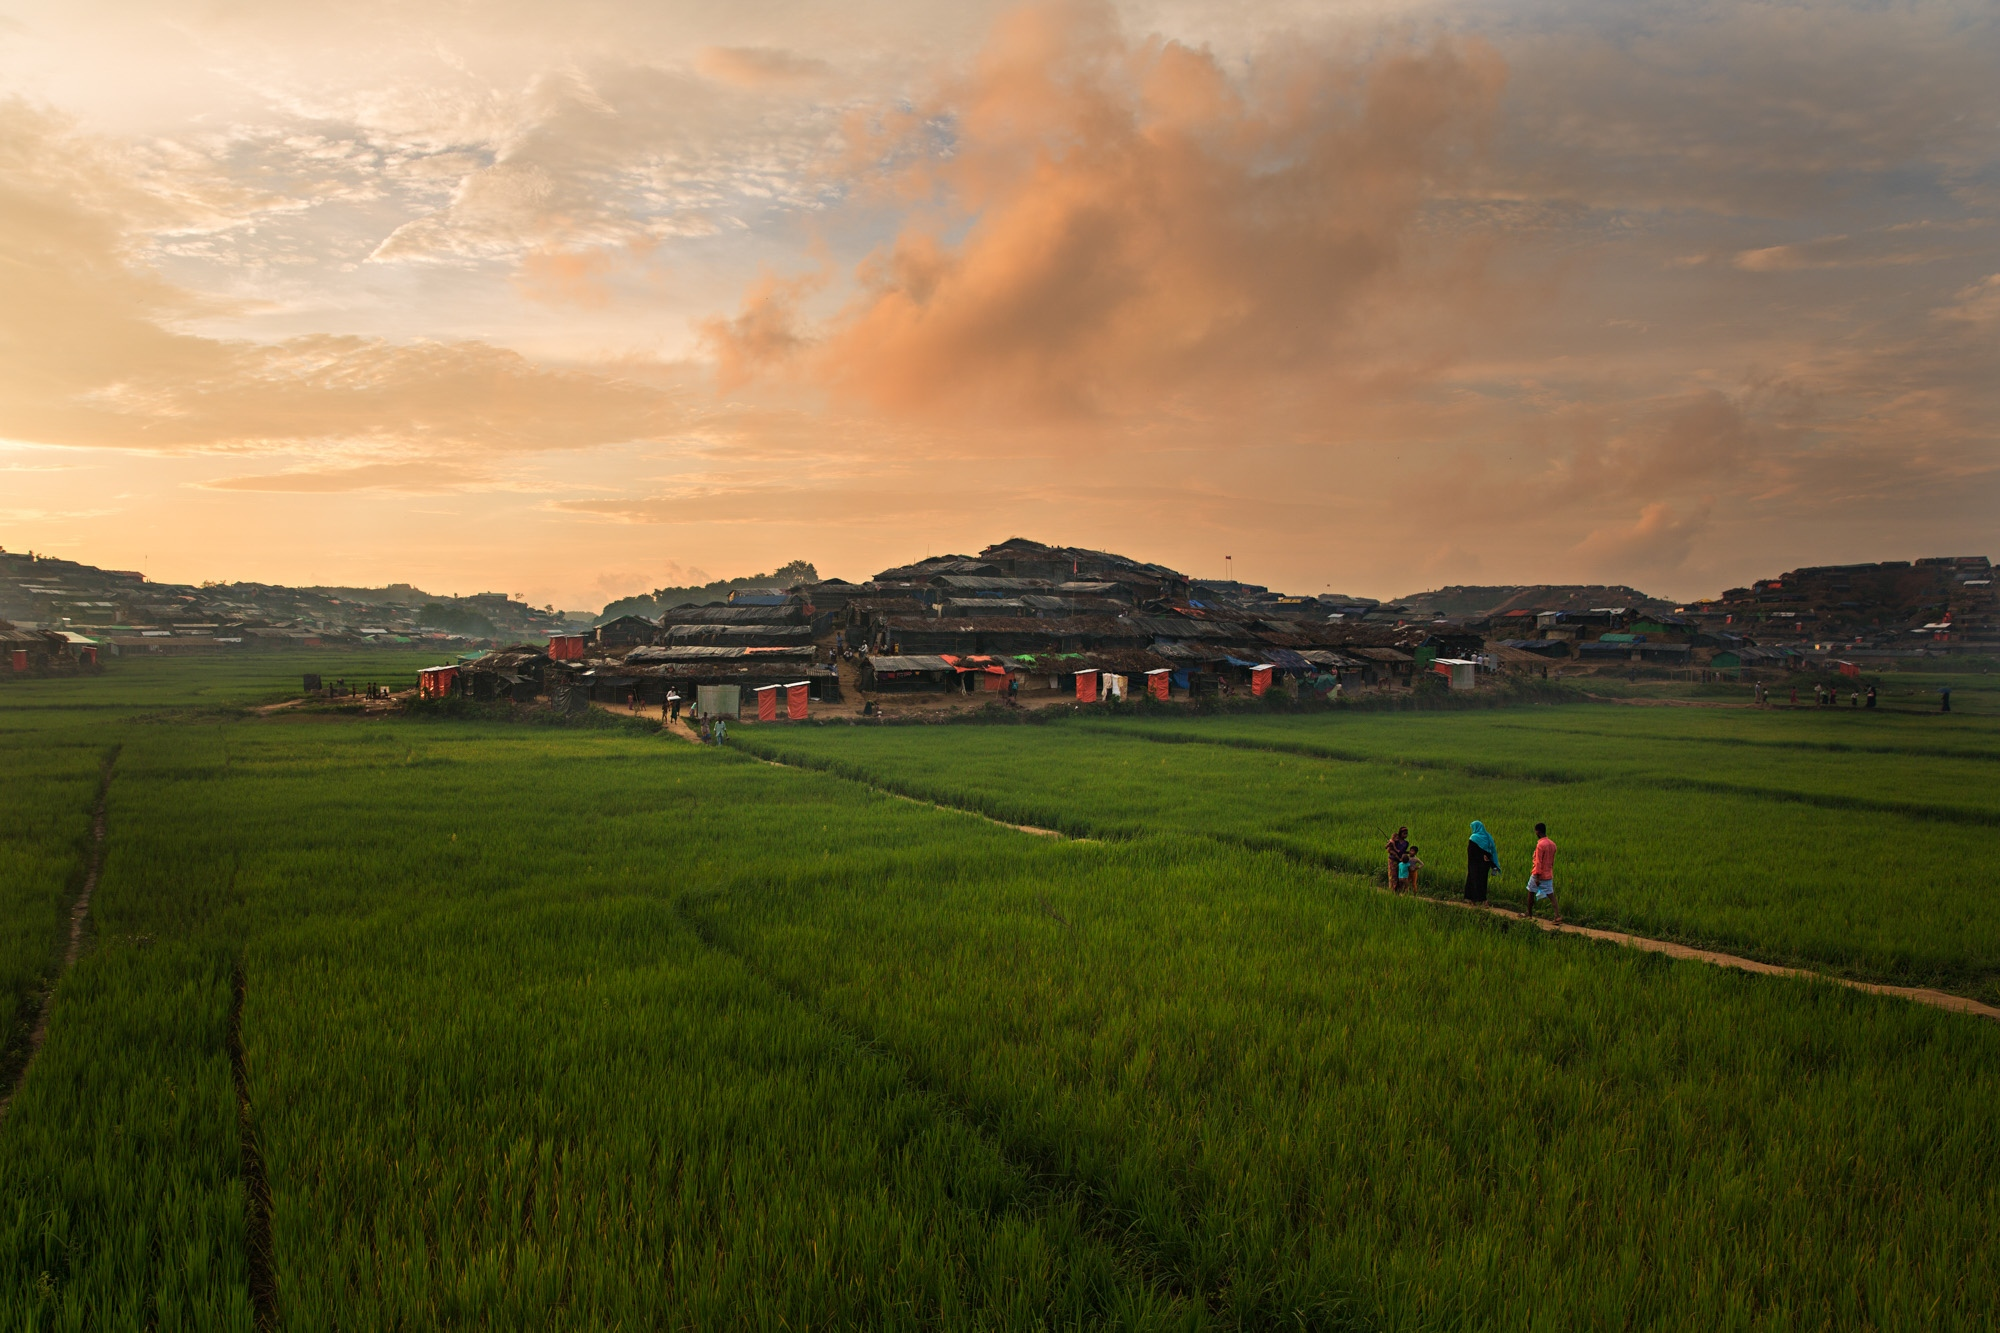 Rohingya refugees walk through Bagoha camp at sunset. Though beautiful, the reality of the camps is harsh, cramped and unforgiving. Despite the violence that they fled, many Rohingya wished to someday return to their homes.